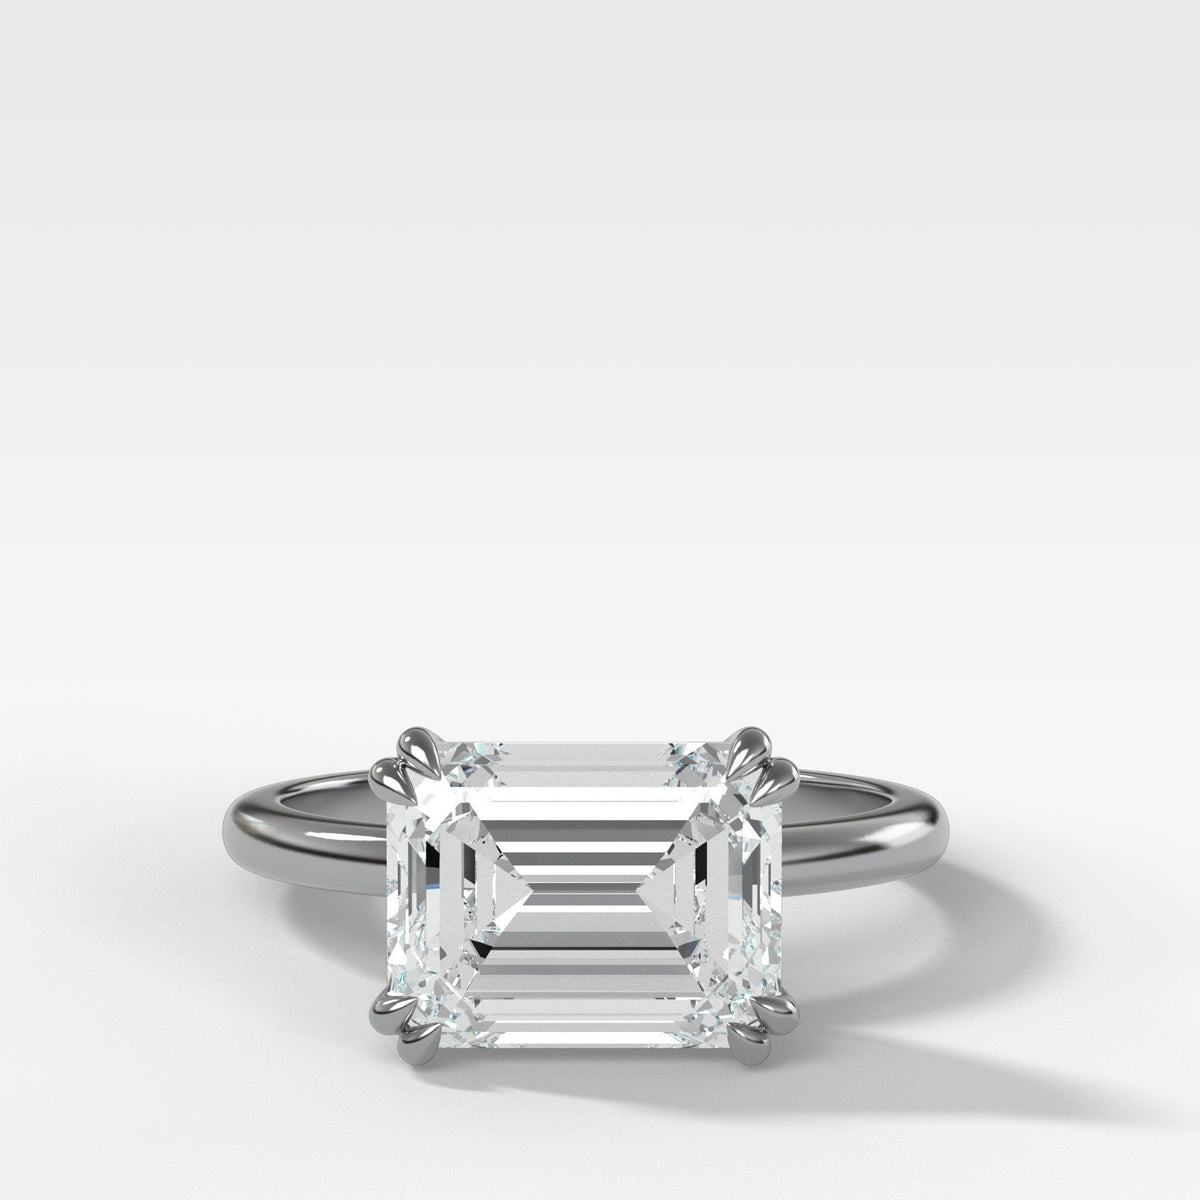 Signature Cathedral Solitaire With Emerald Cut (East West) in White Gold by Good Stone